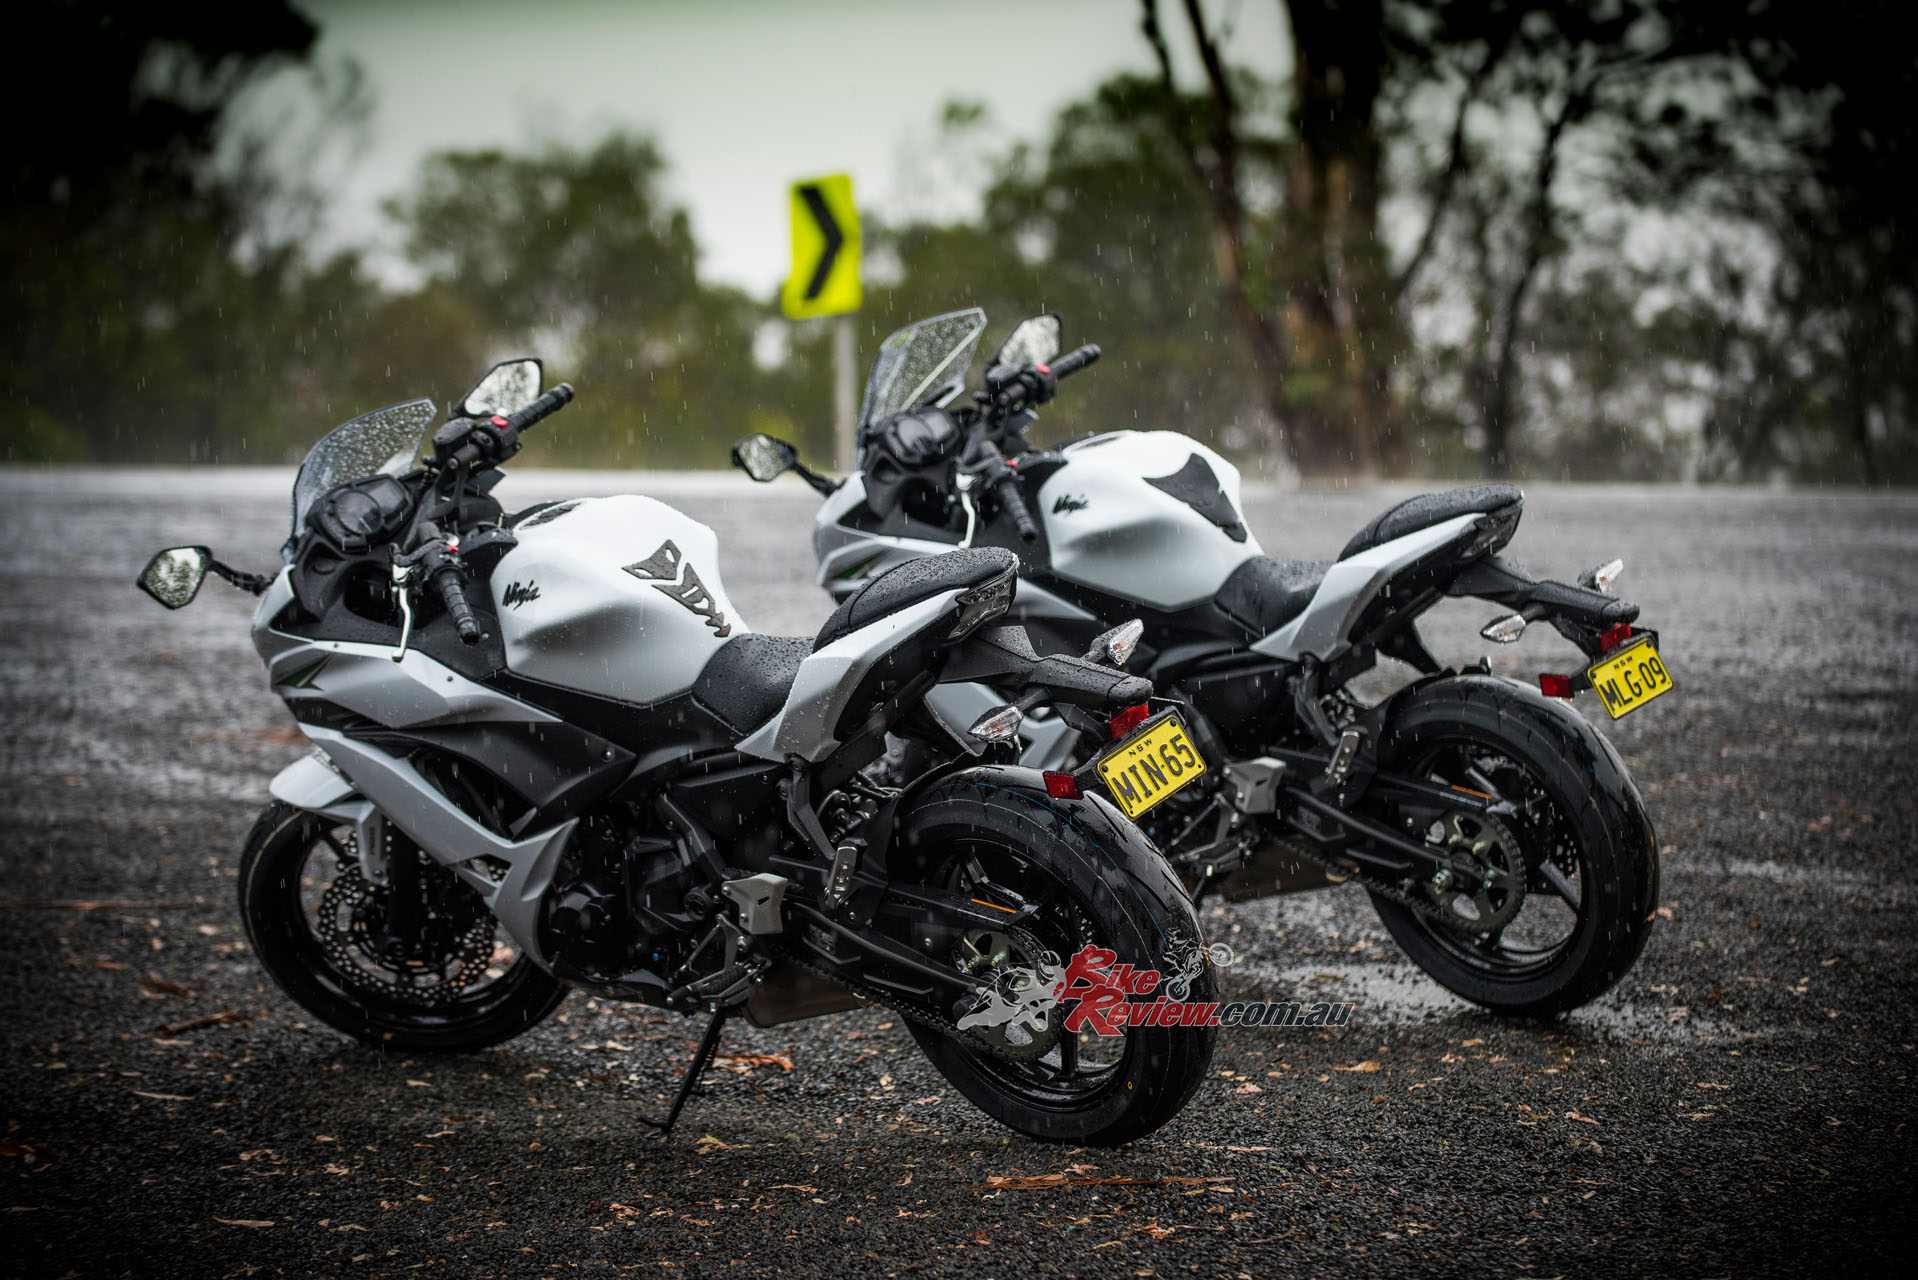 The 2017 Kawasaki Ninja 650L launch wasn't without some challenging conditions, offering a great opportunity to test wet weather capabilities.